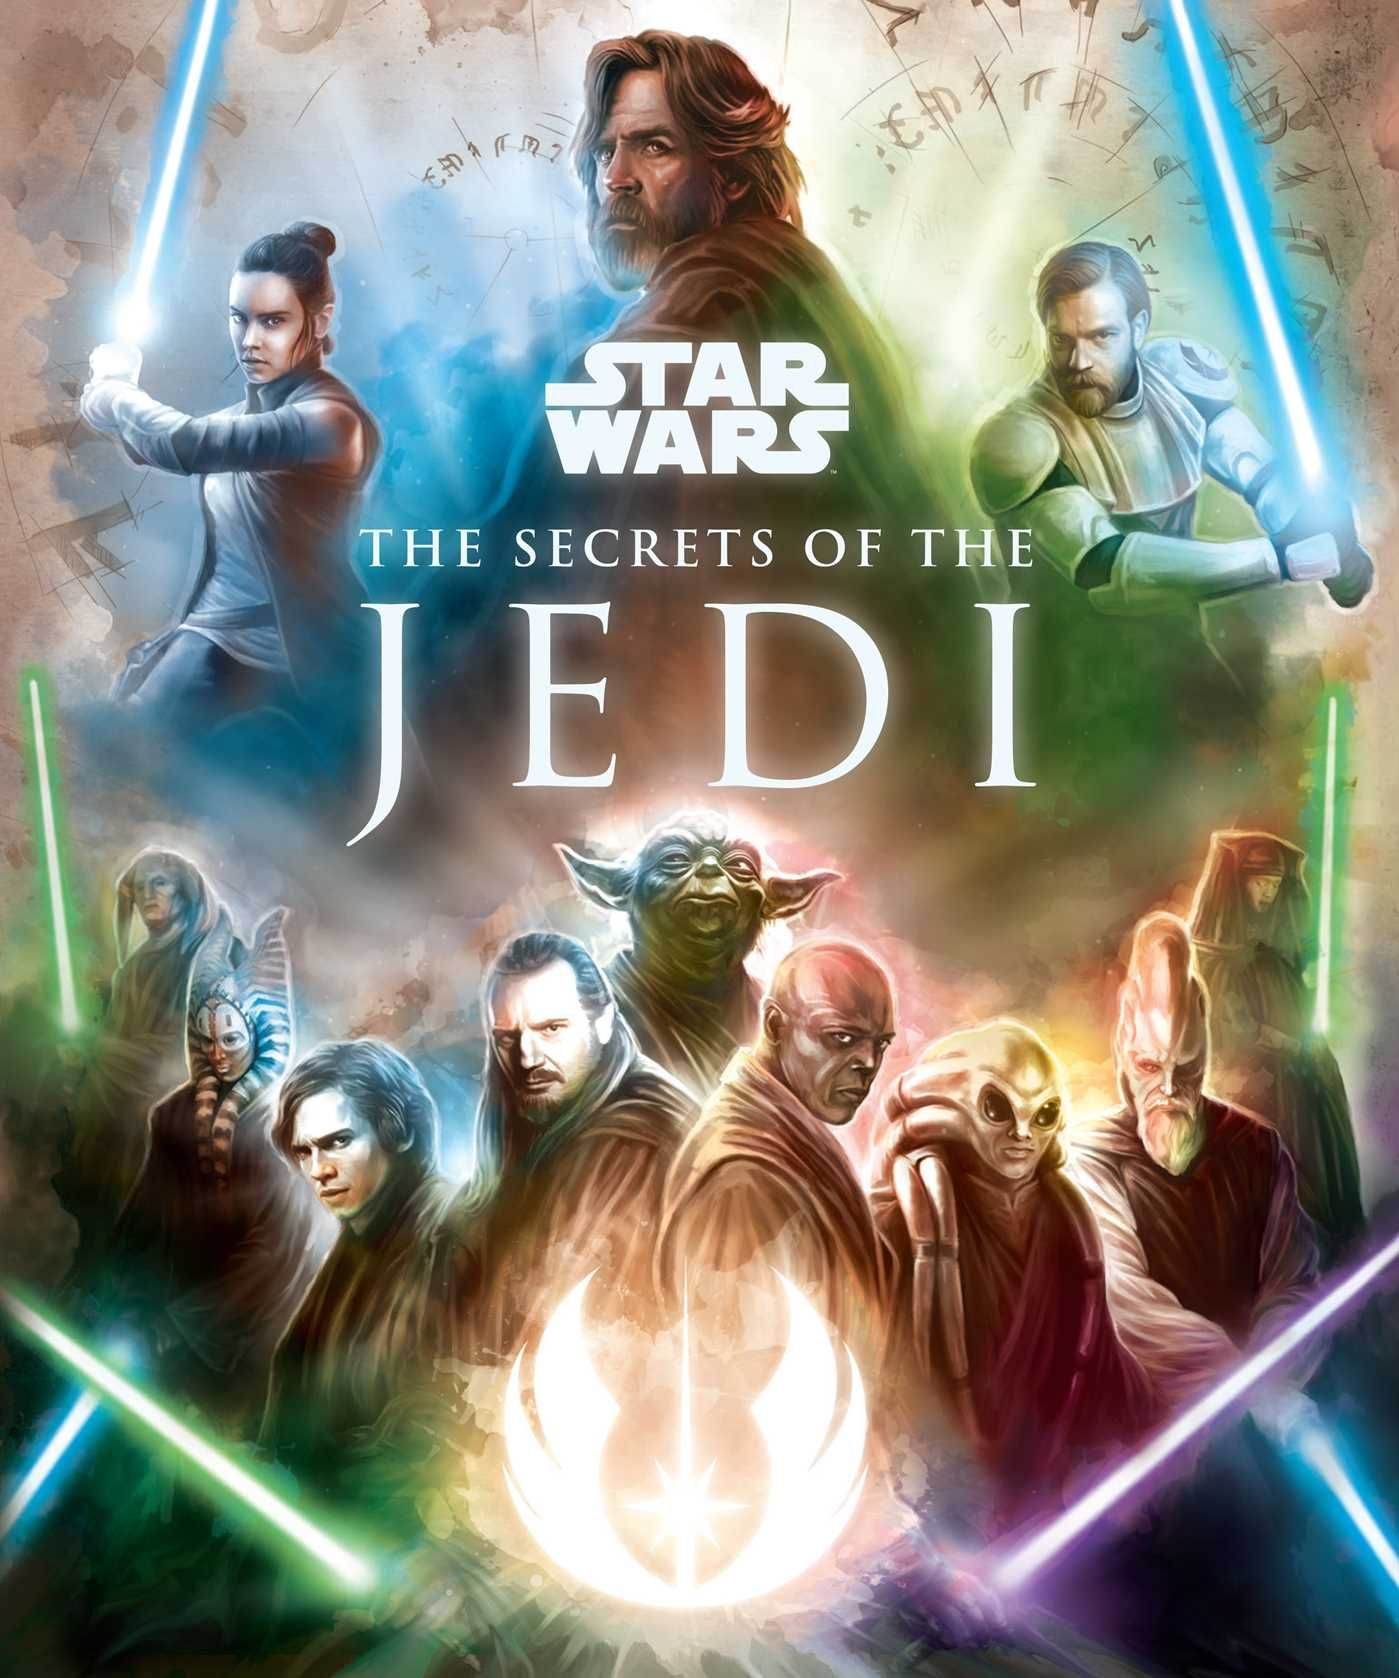 Pdf Download Star Wars The Secrets Of The Jedi Star Wars Books Star Wars New Star Wars